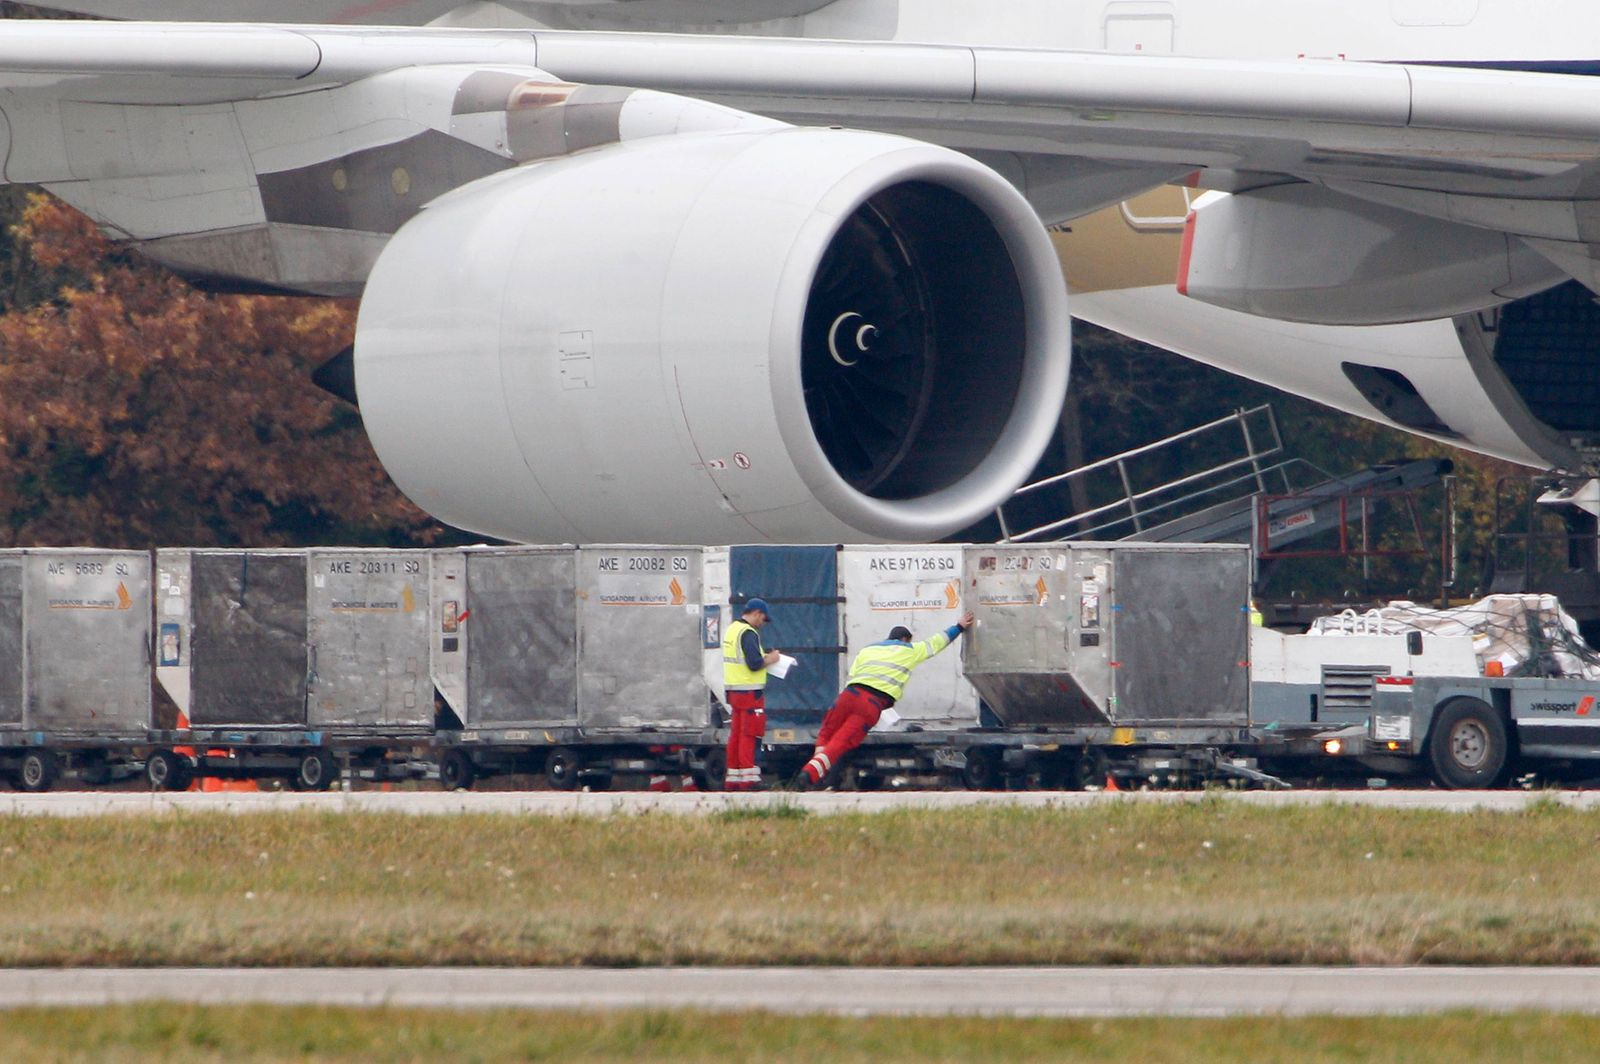 Ground crew members check freight containers to be loaded into a Singapore Airlines Airbus A380 superjumbo at Zurich Airport